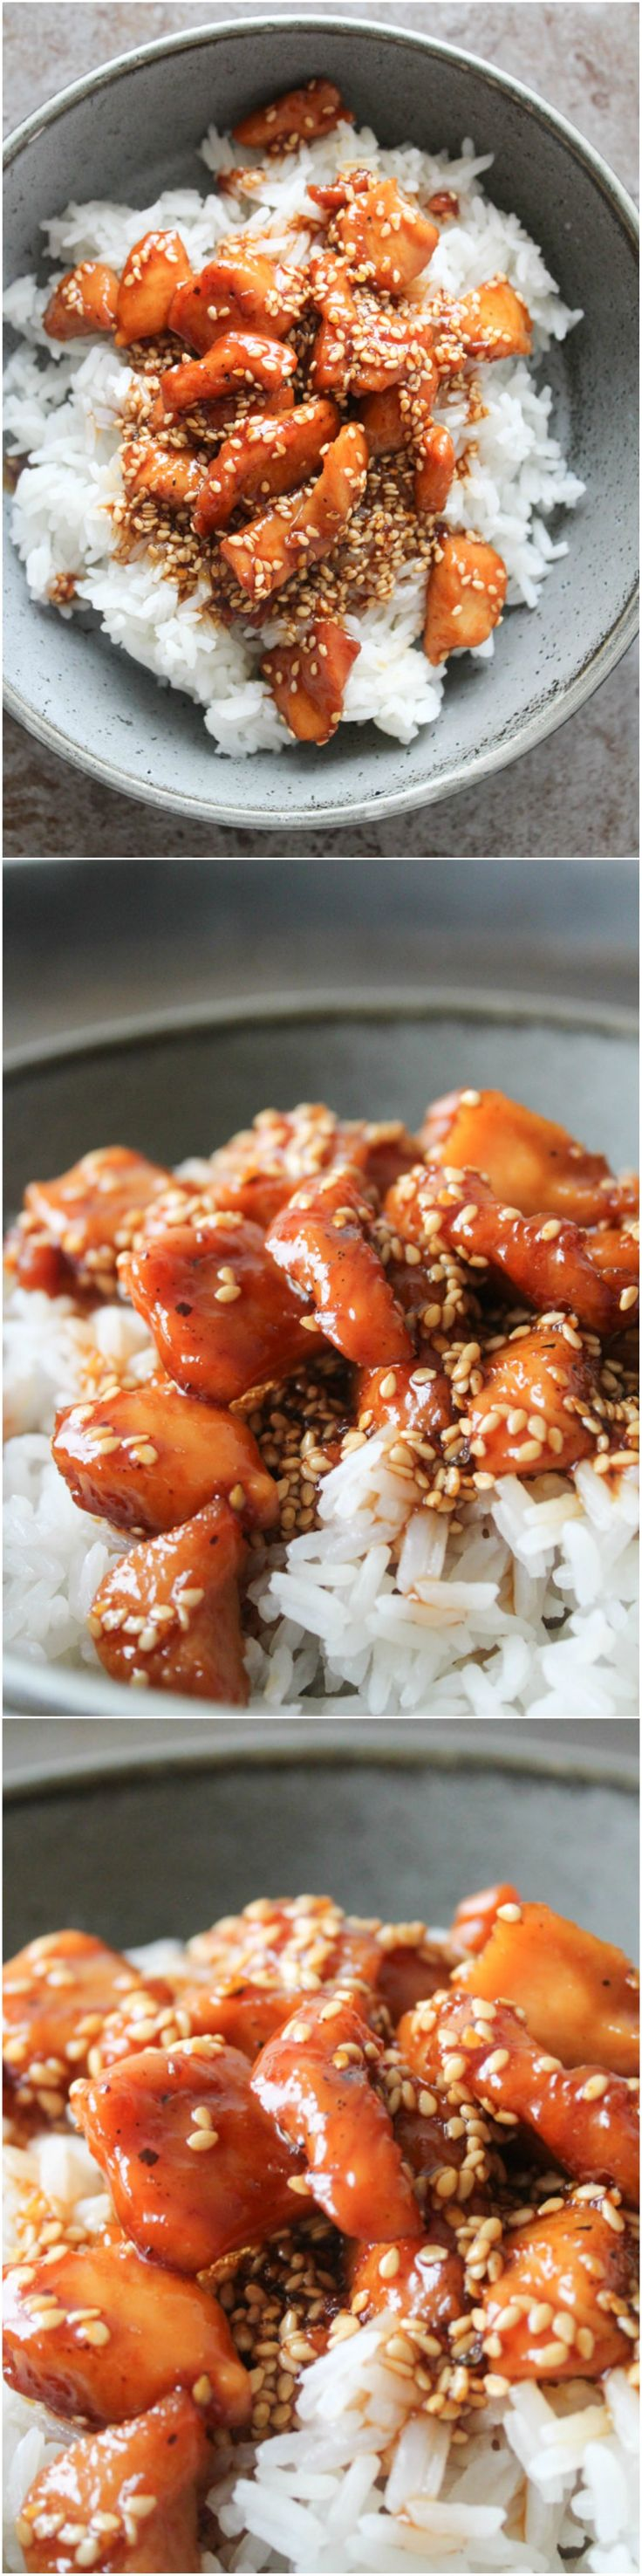 Orange and honey sesame chicken